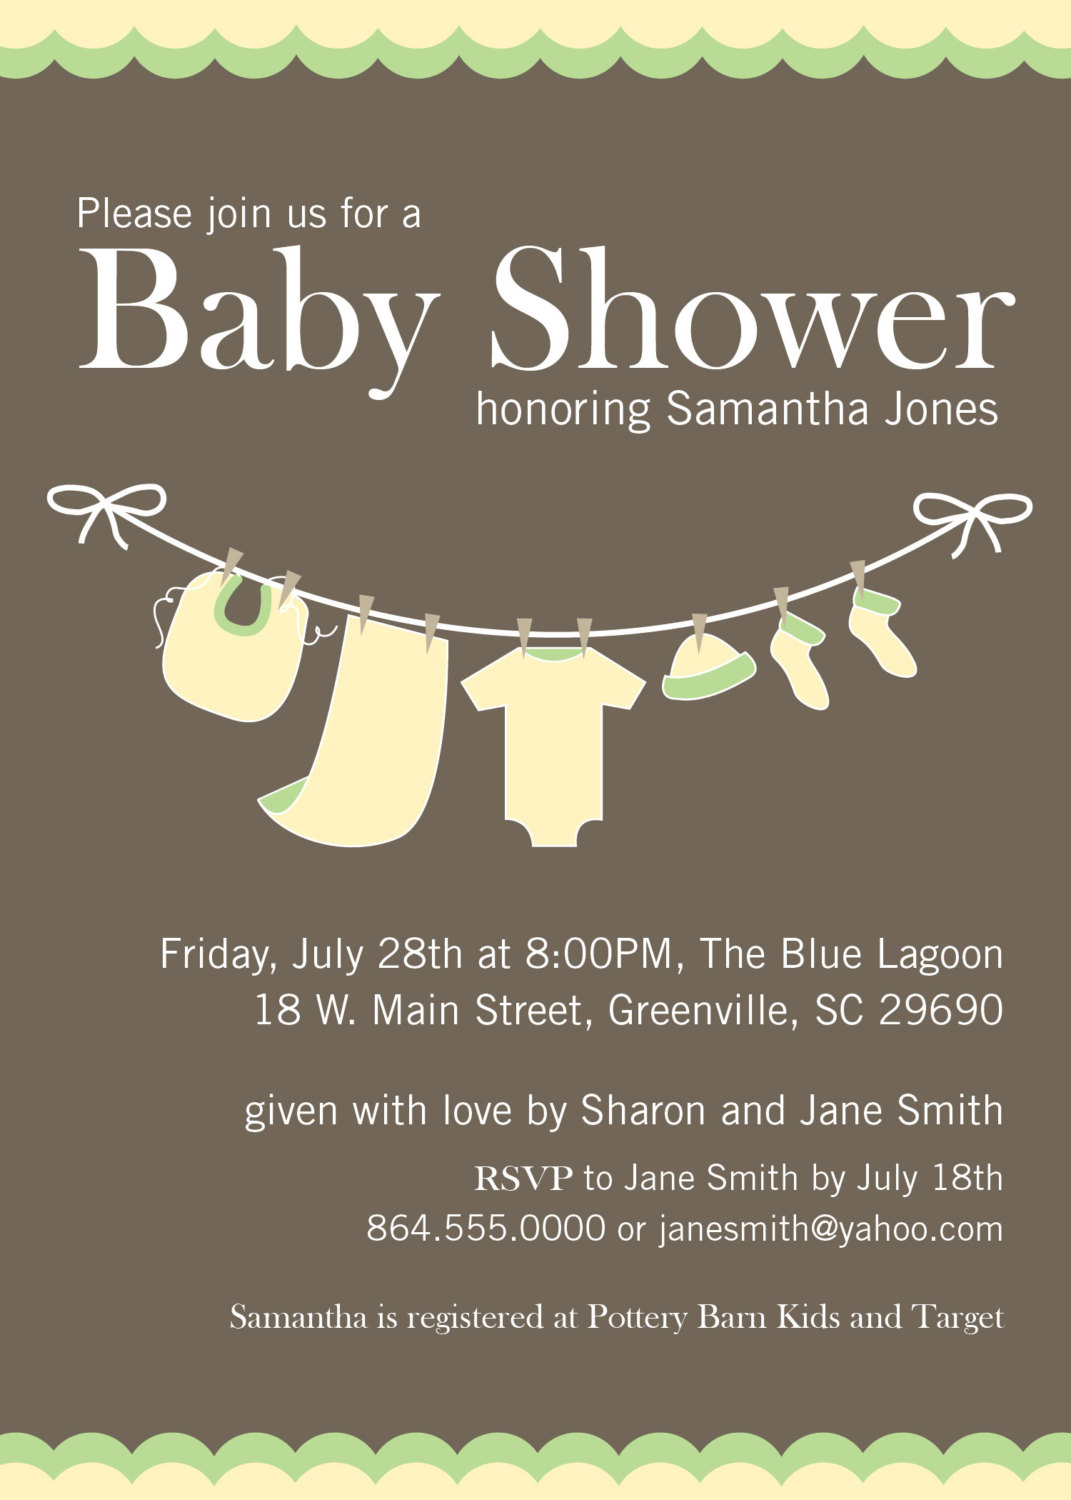 Baby shower invitations yellow green gender neutral clothesline baby shower invitations yellow green gender neutral clothesline set of 10 filmwisefo